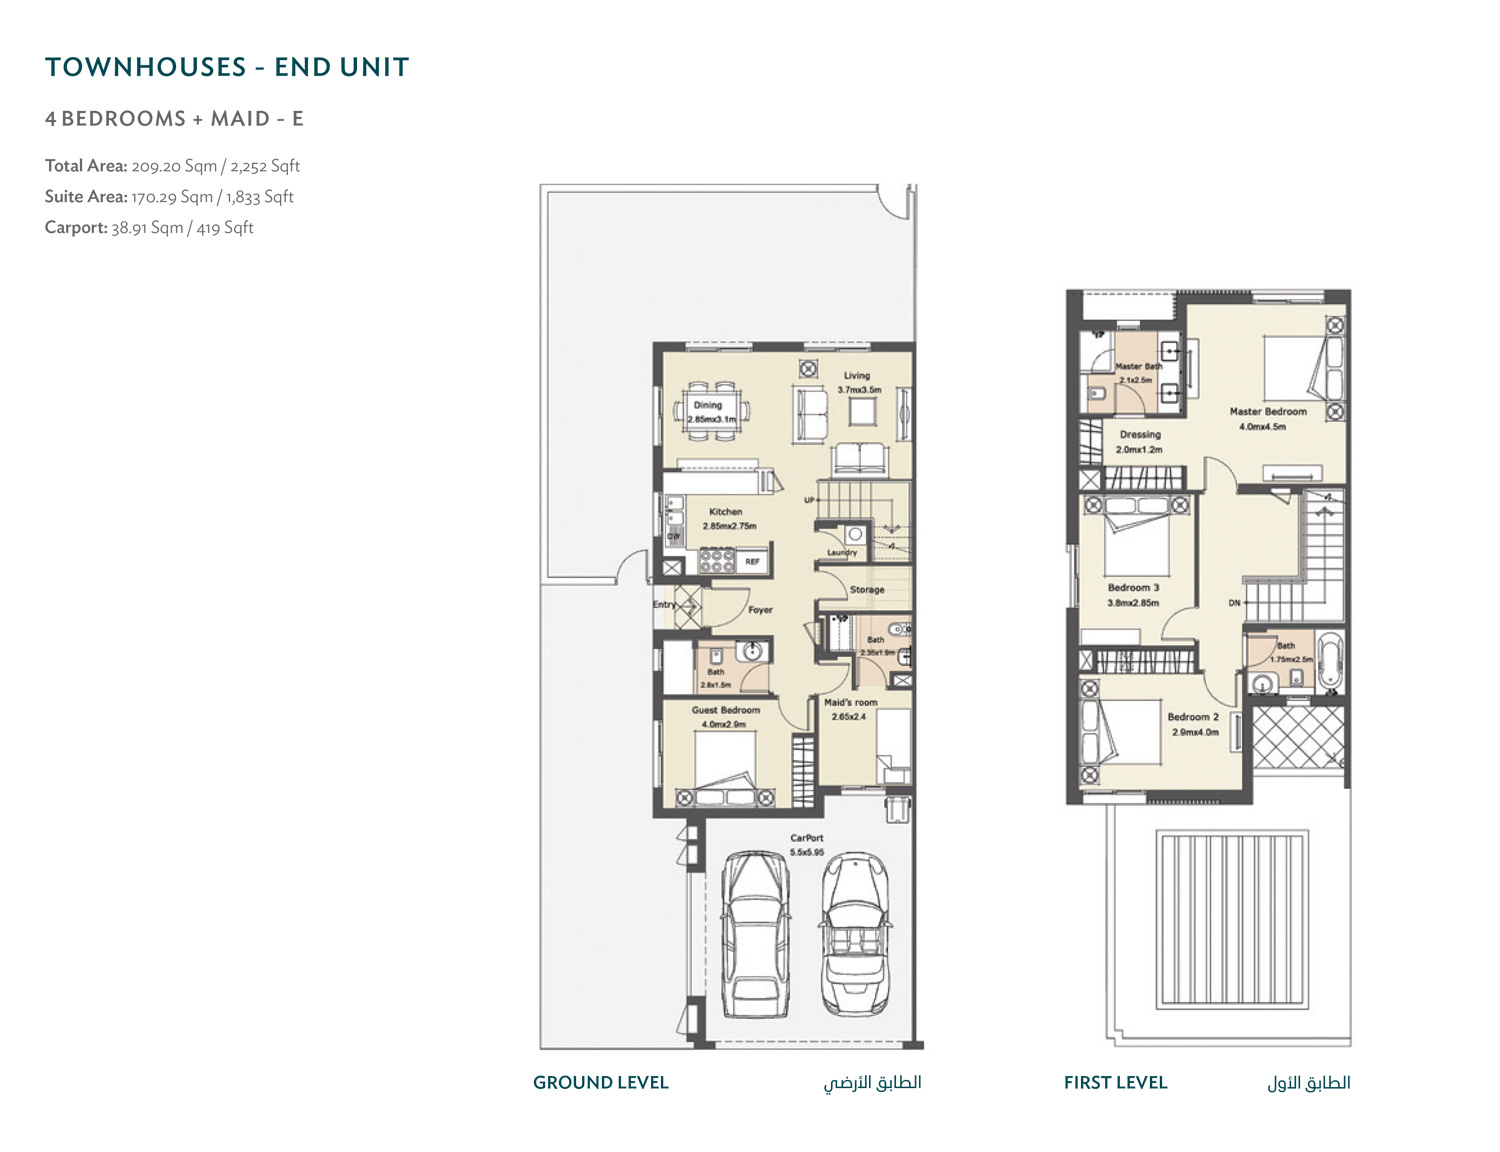 Phase 4 - 4 Bedroom - Maid - E, Size 2252 sqft